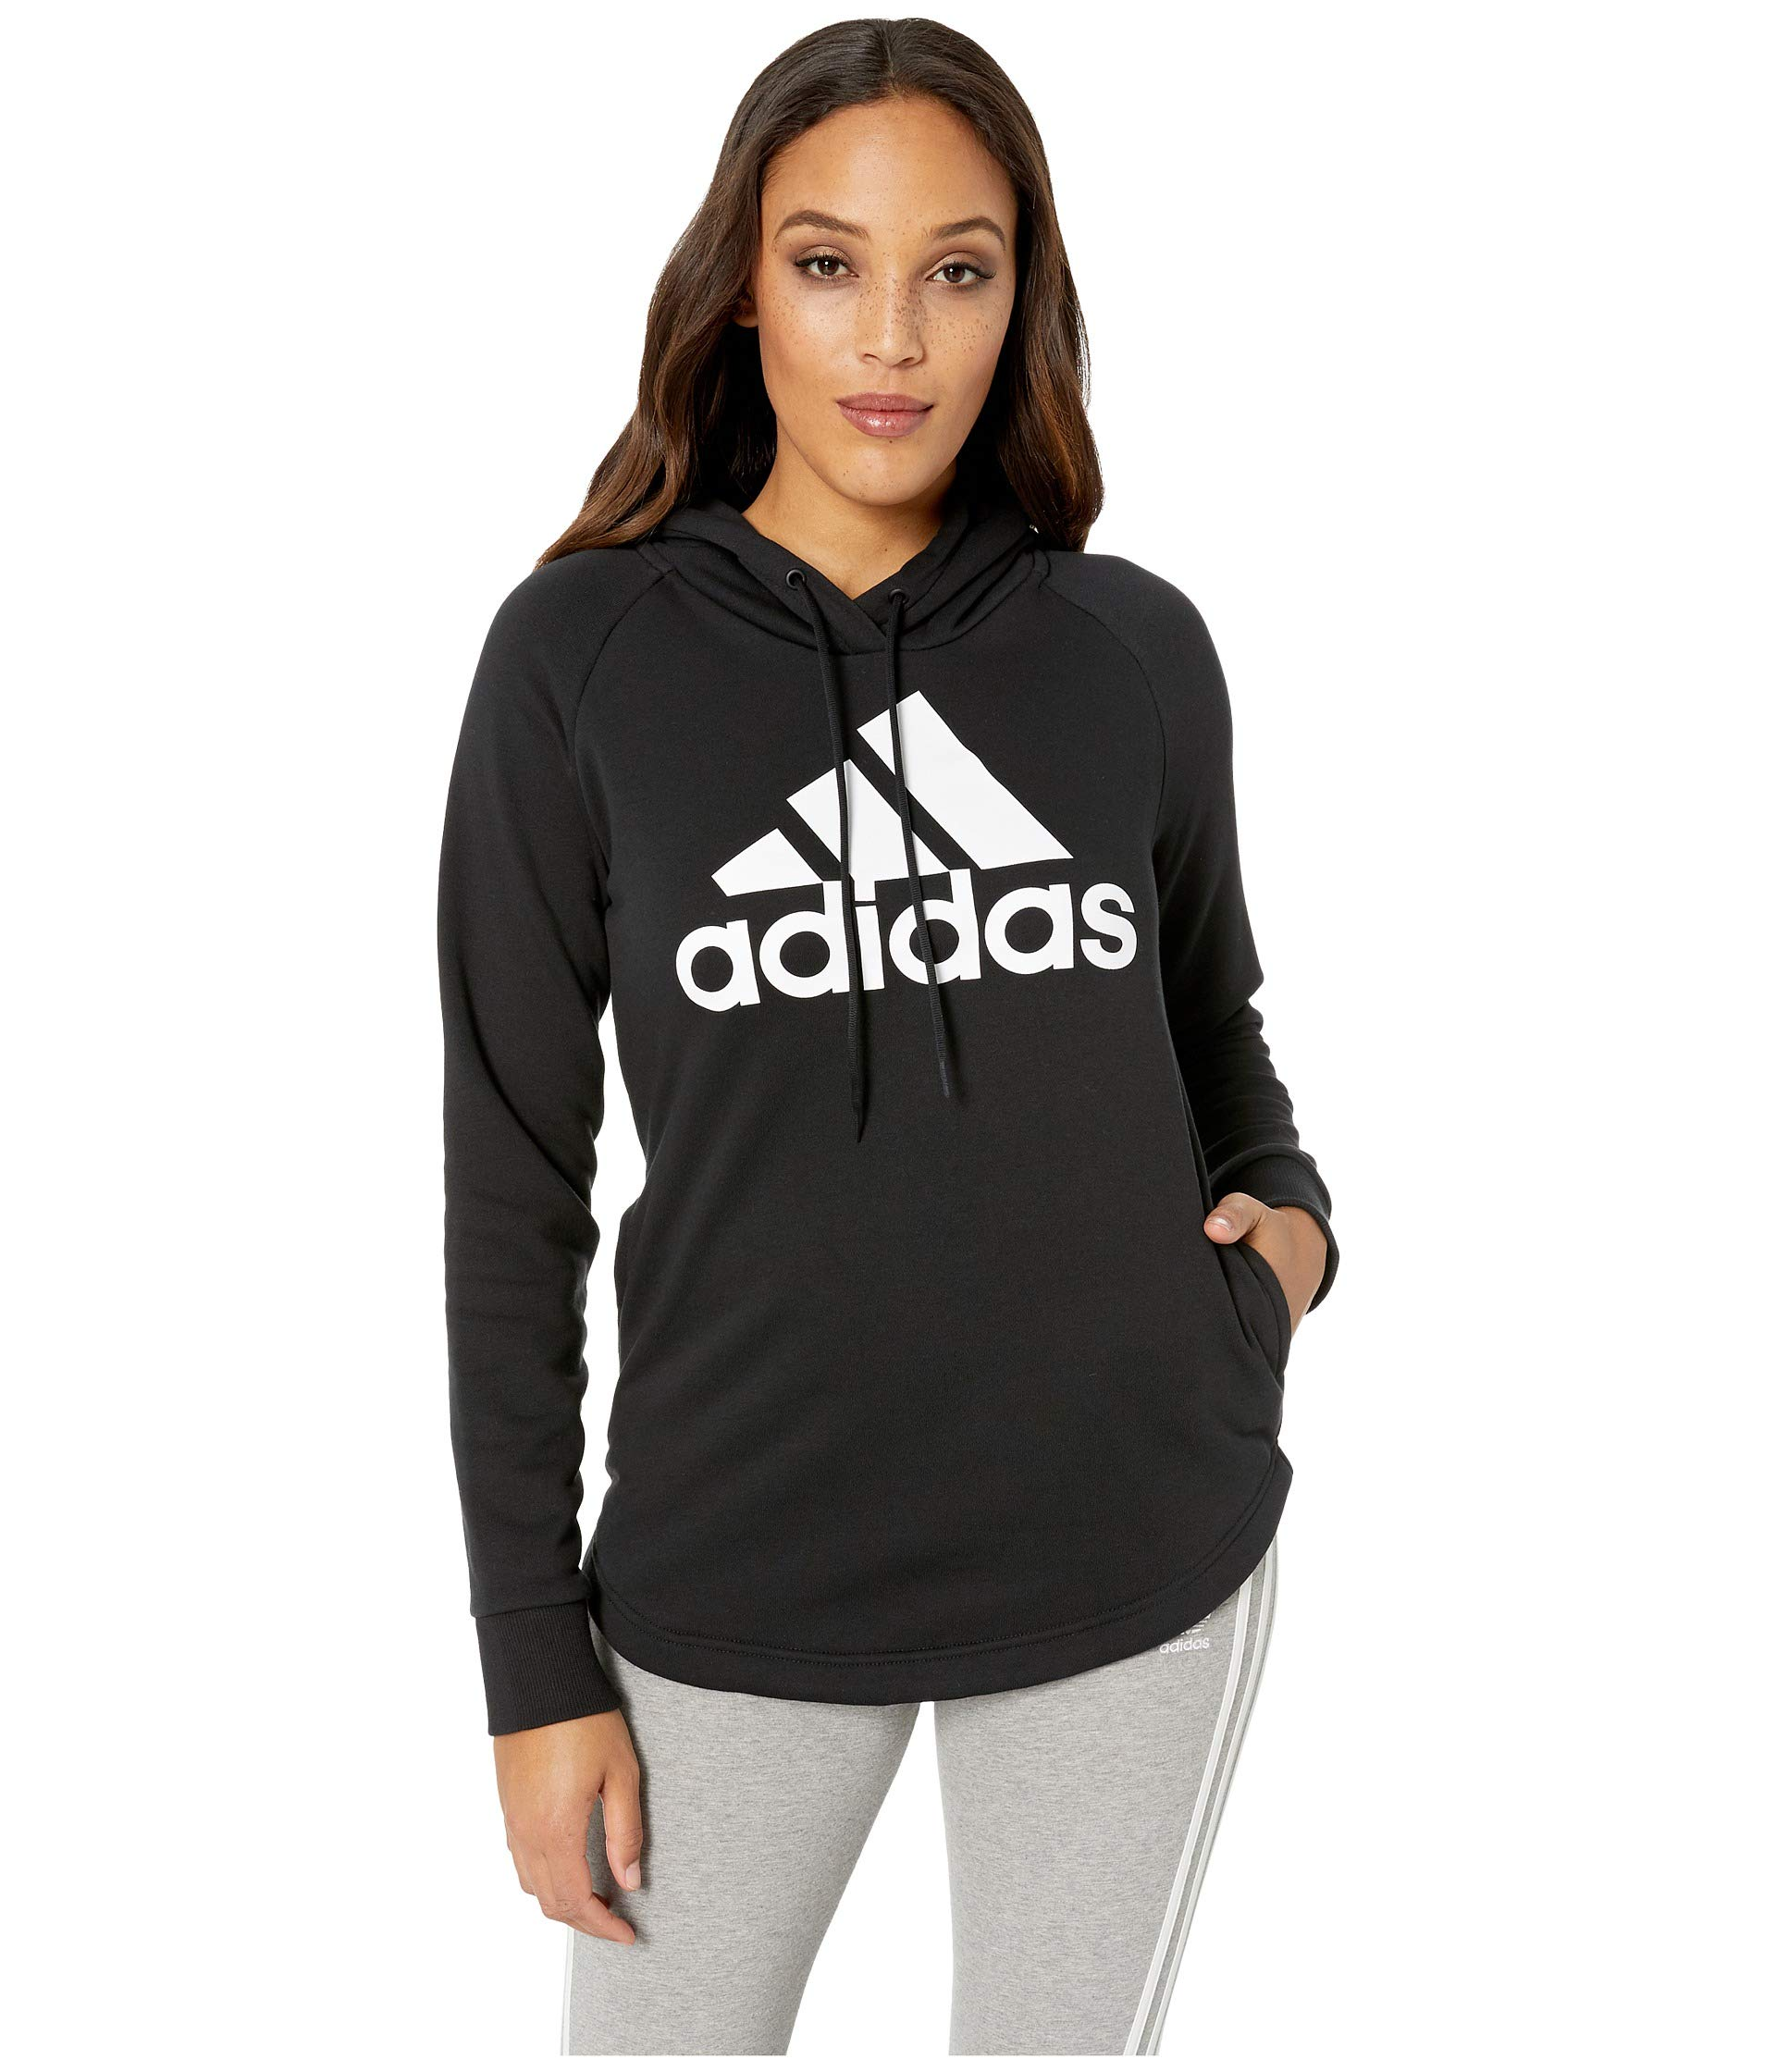 adidas Women's Must Have Hoodie Art 7 Small